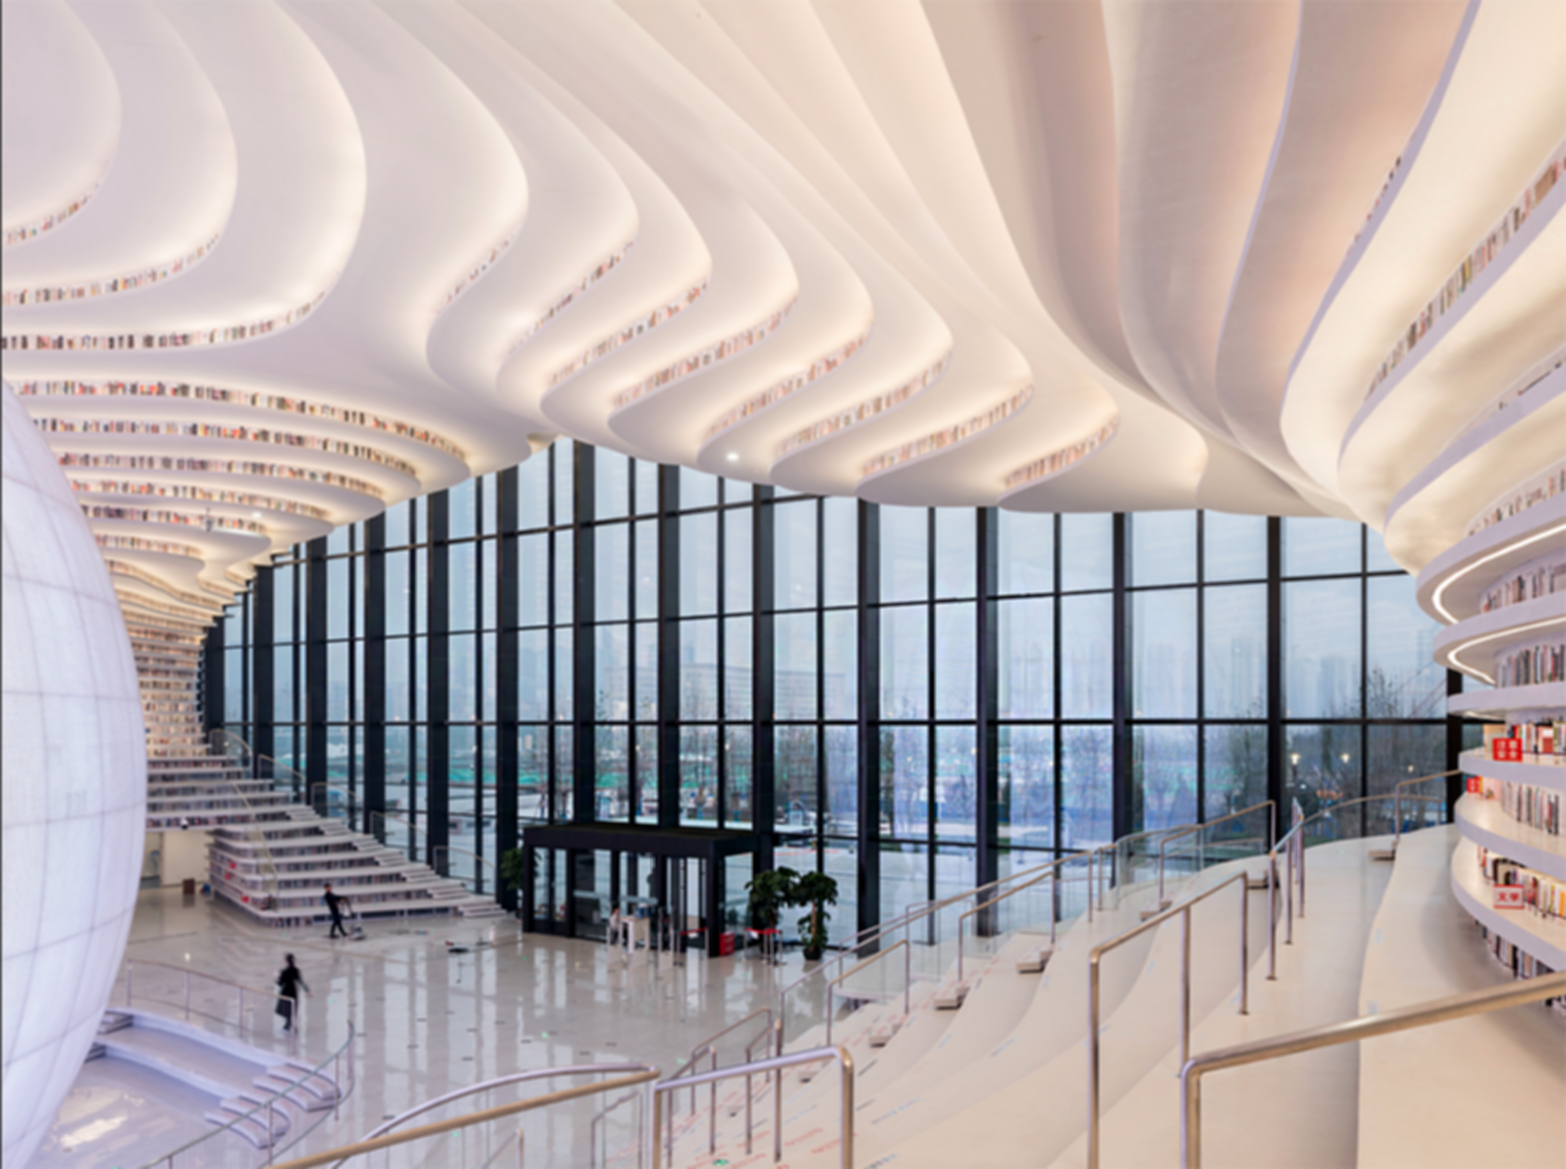 Tianjin Binhai Library - Interior Entrance